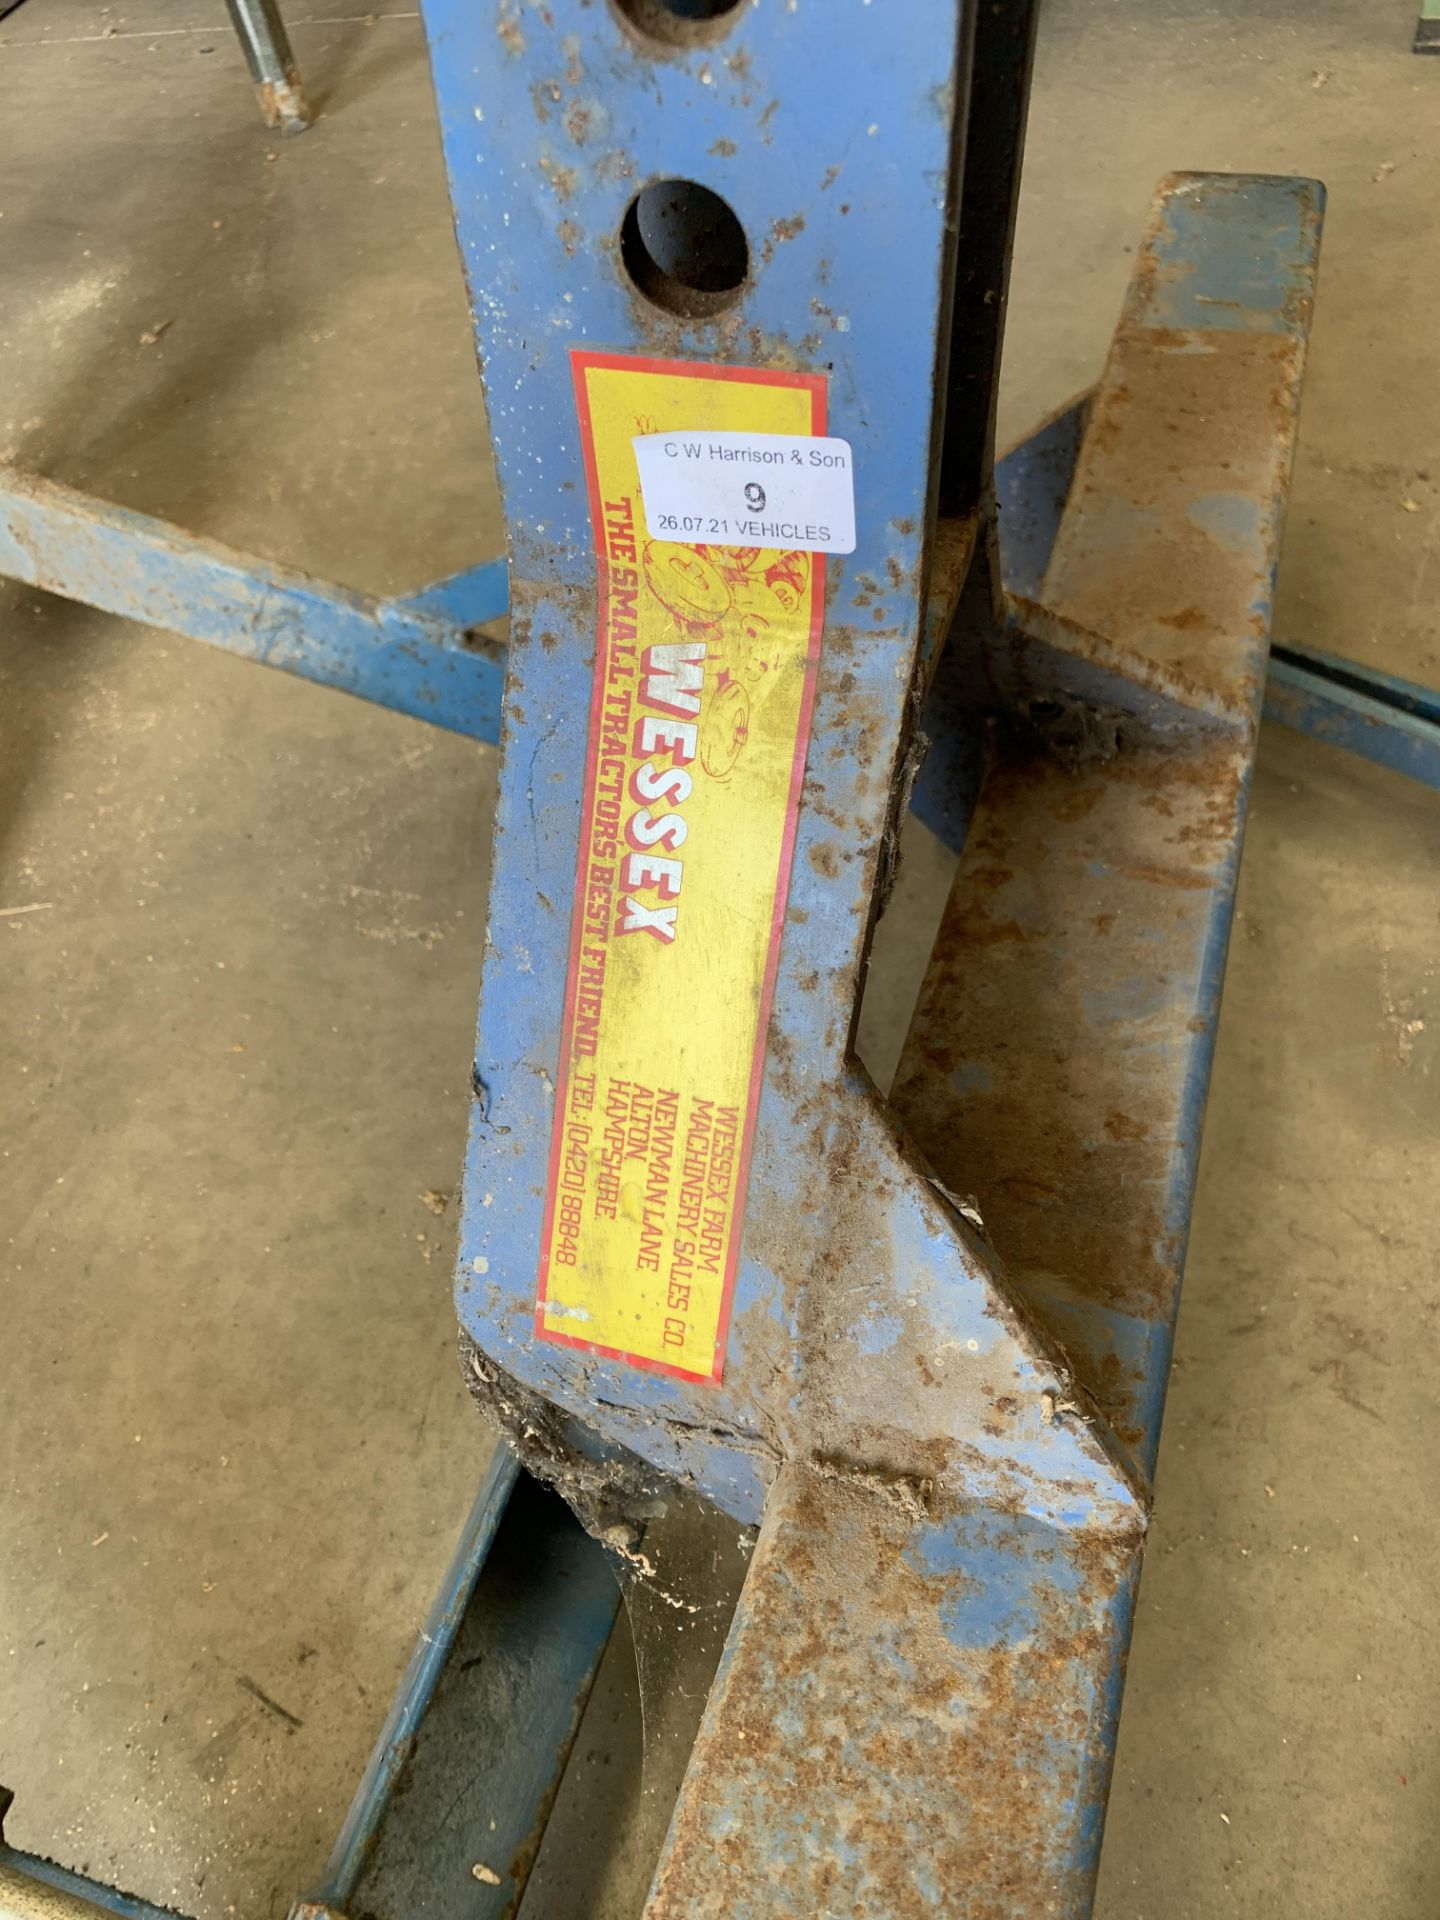 A blue metal frame TWO PLOUGH ATTACHMENT *Please note, - Image 4 of 5